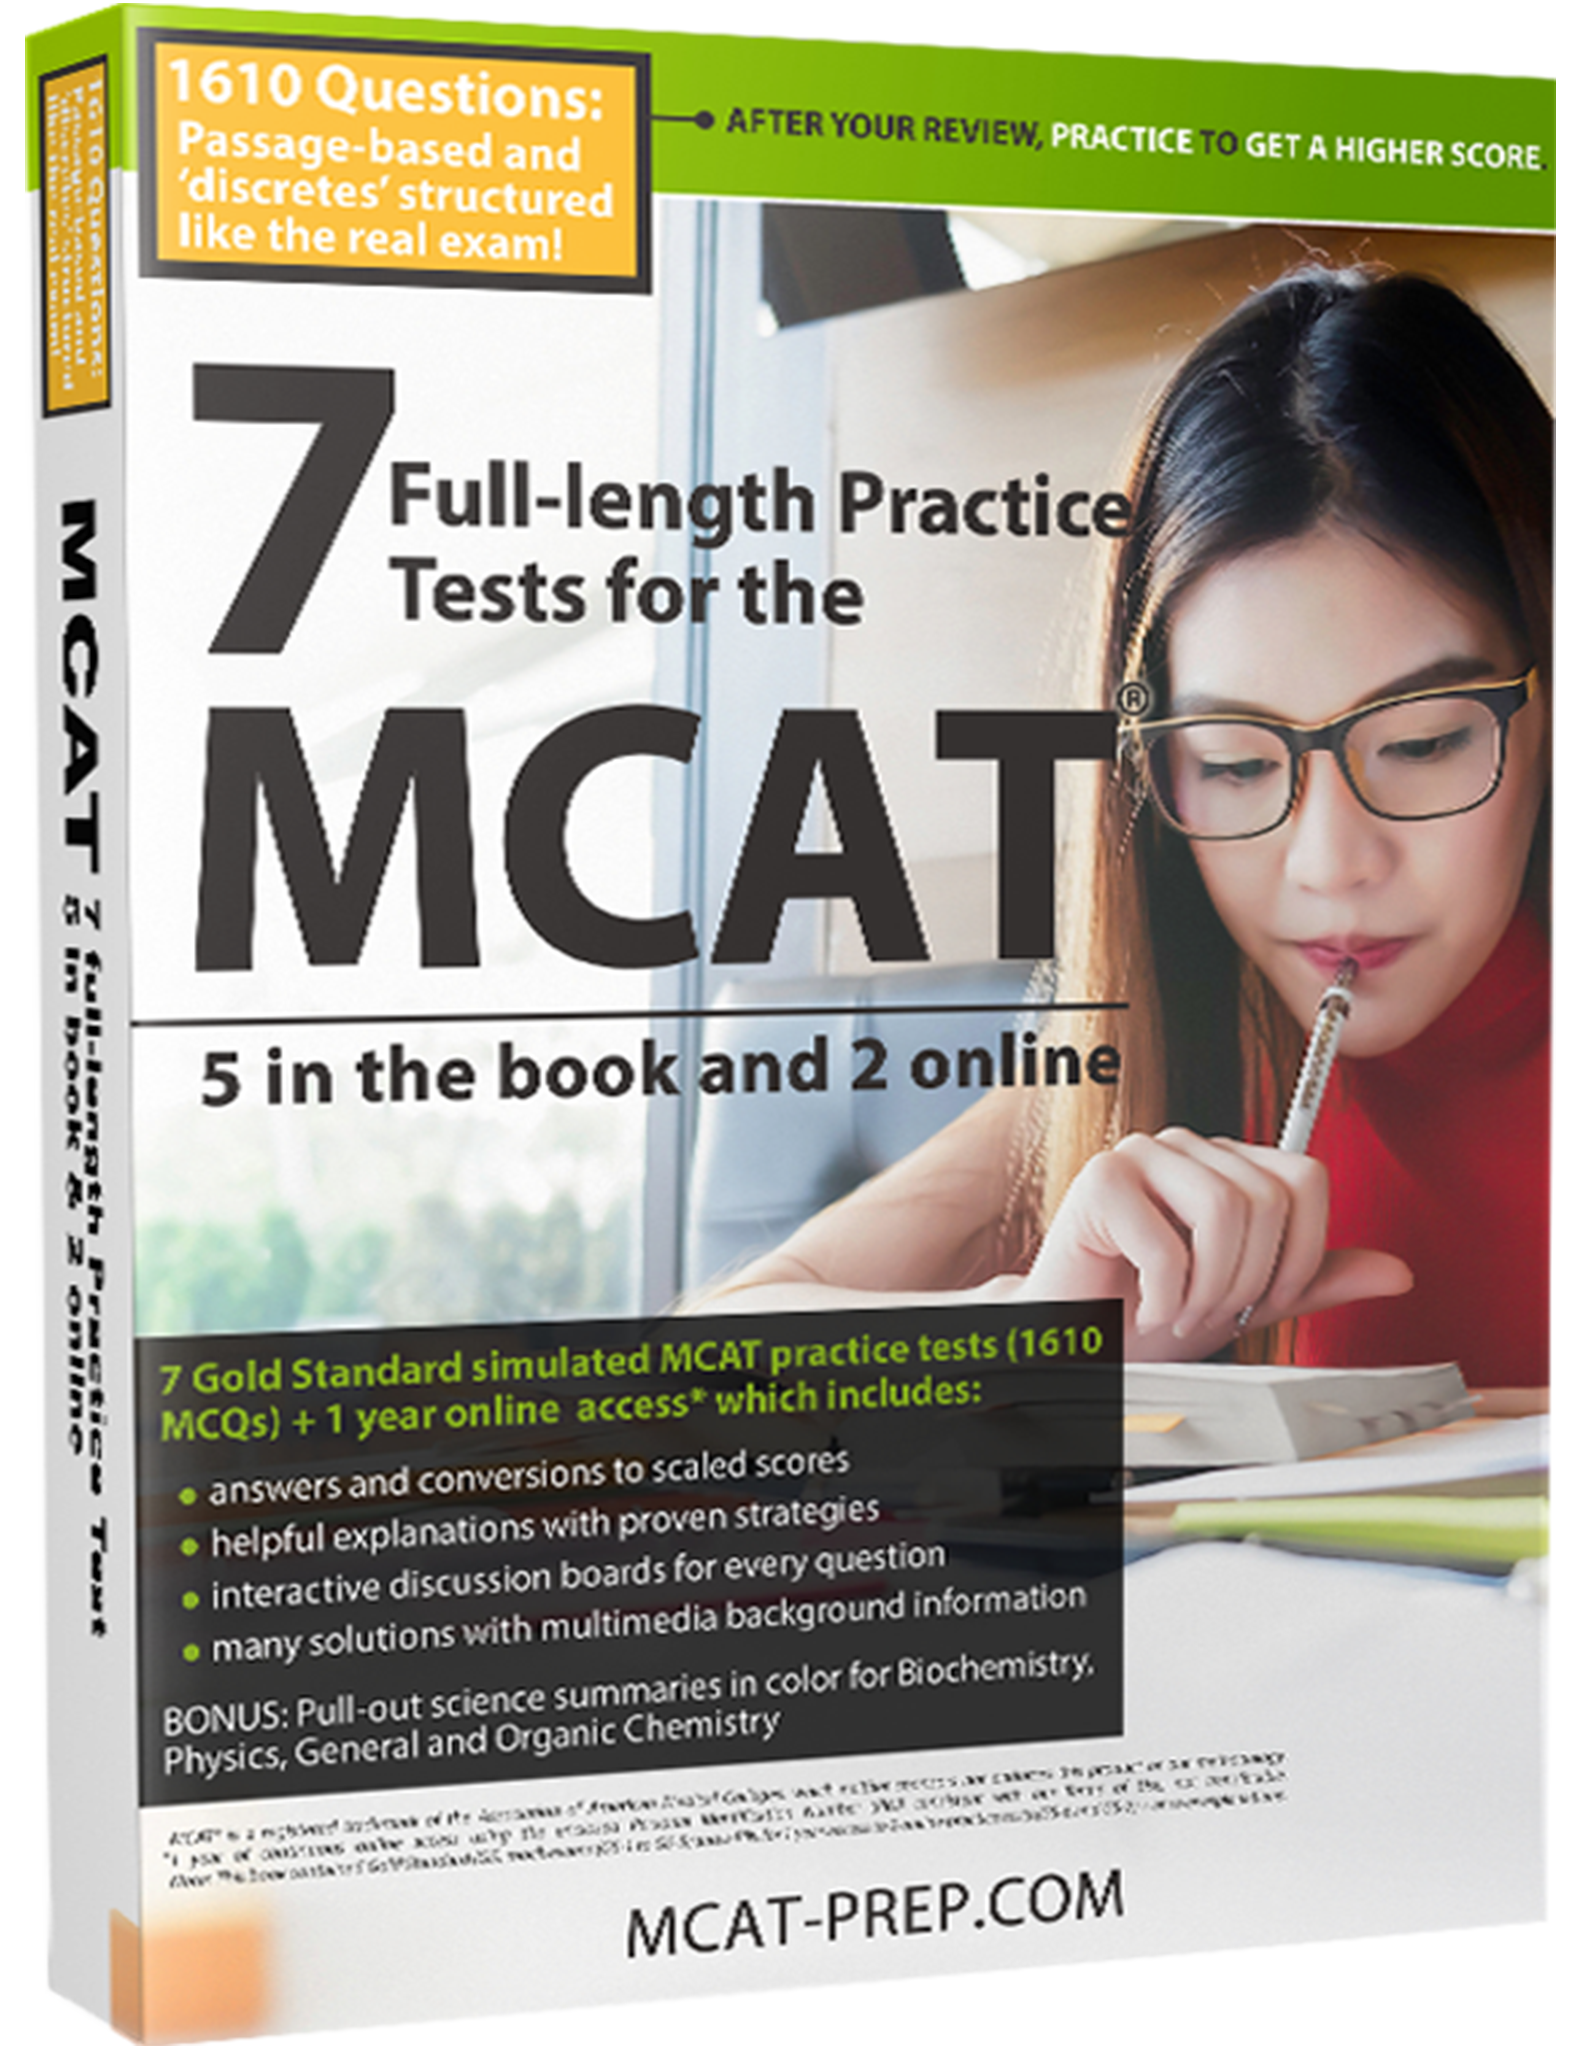 MCAT book with full-length MCAT practice tests